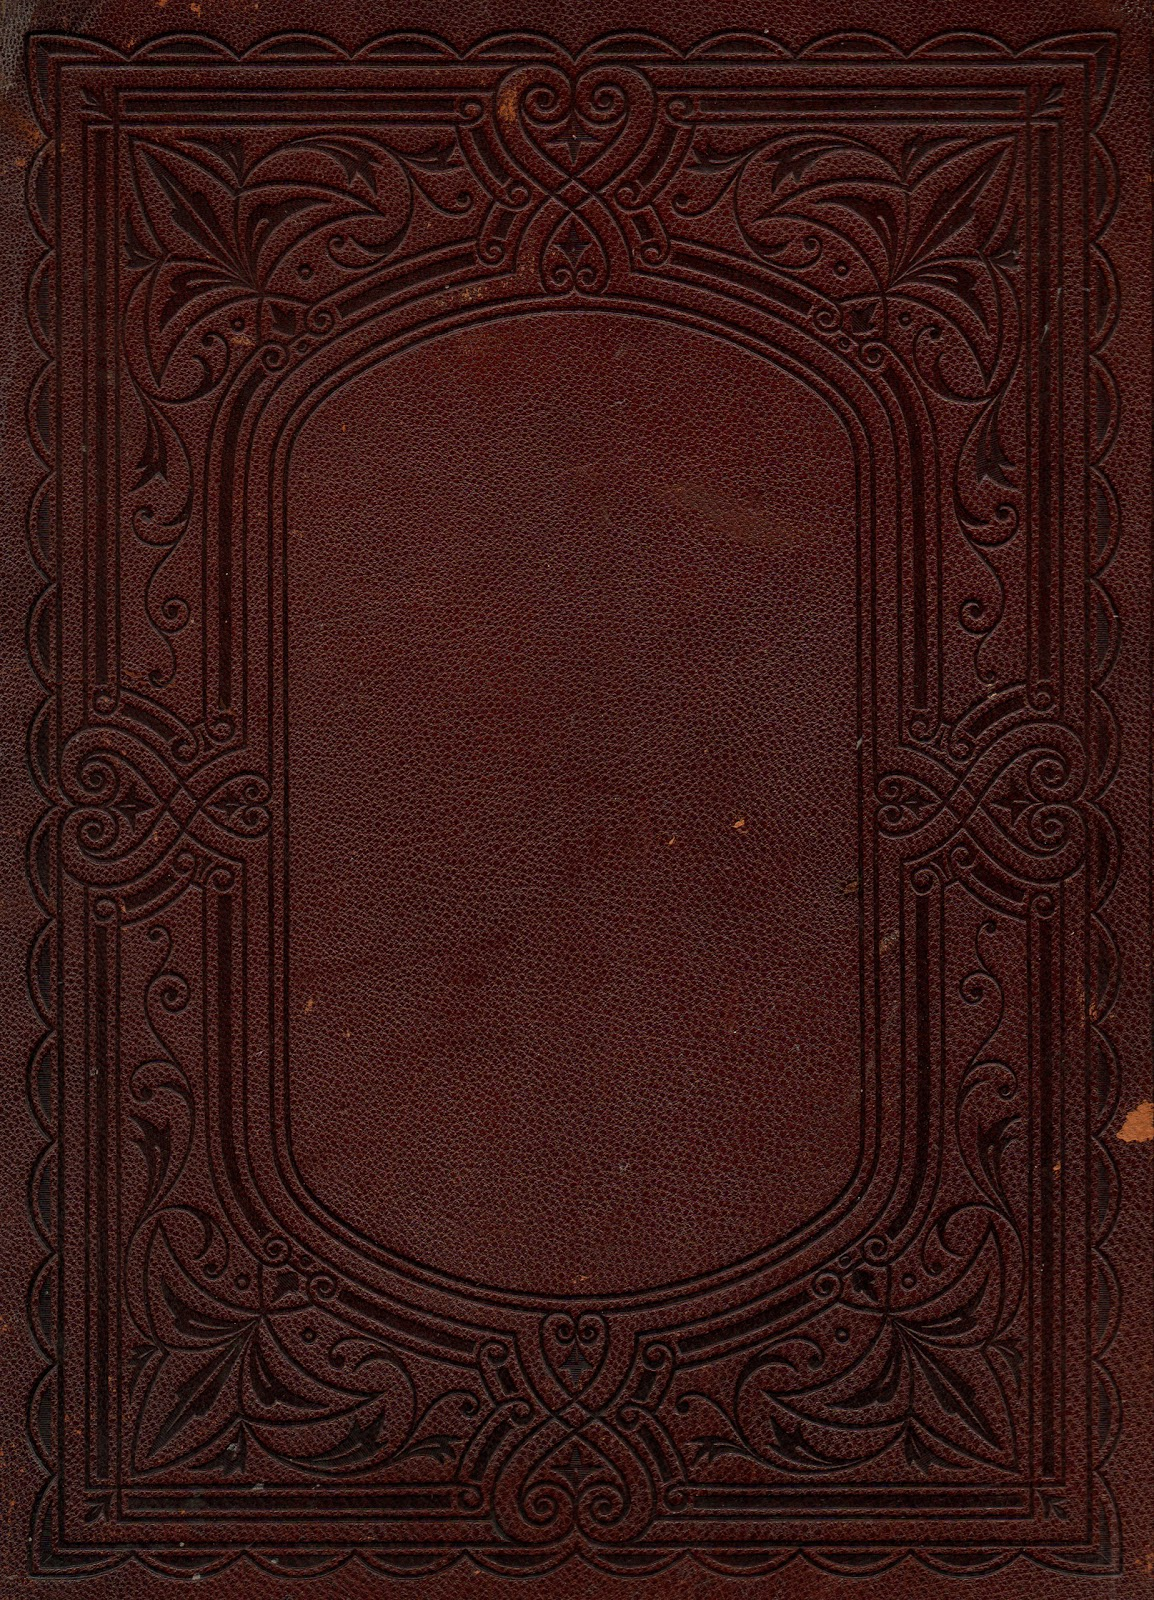 Antique Book Cover Frame Free PNG ImageOld Book Design